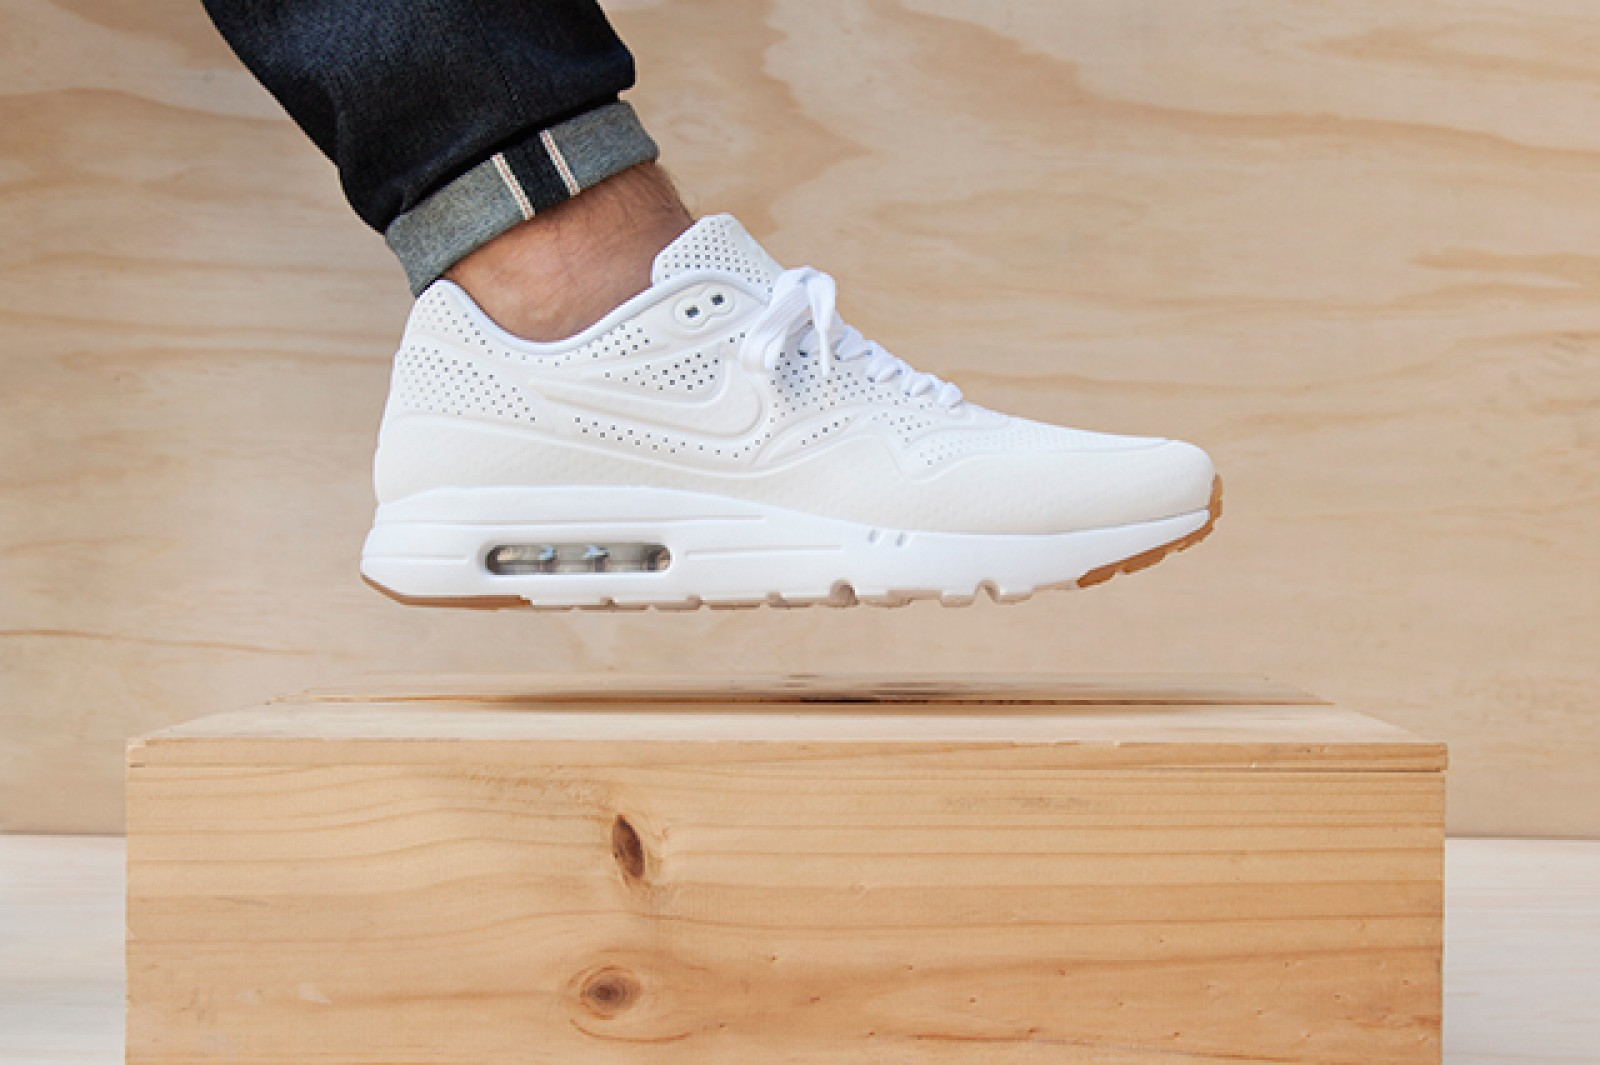 finest selection 4e411 d6a91 Very Goods   Nike Air Max 1 Ultra Moire White-White - 705297-111